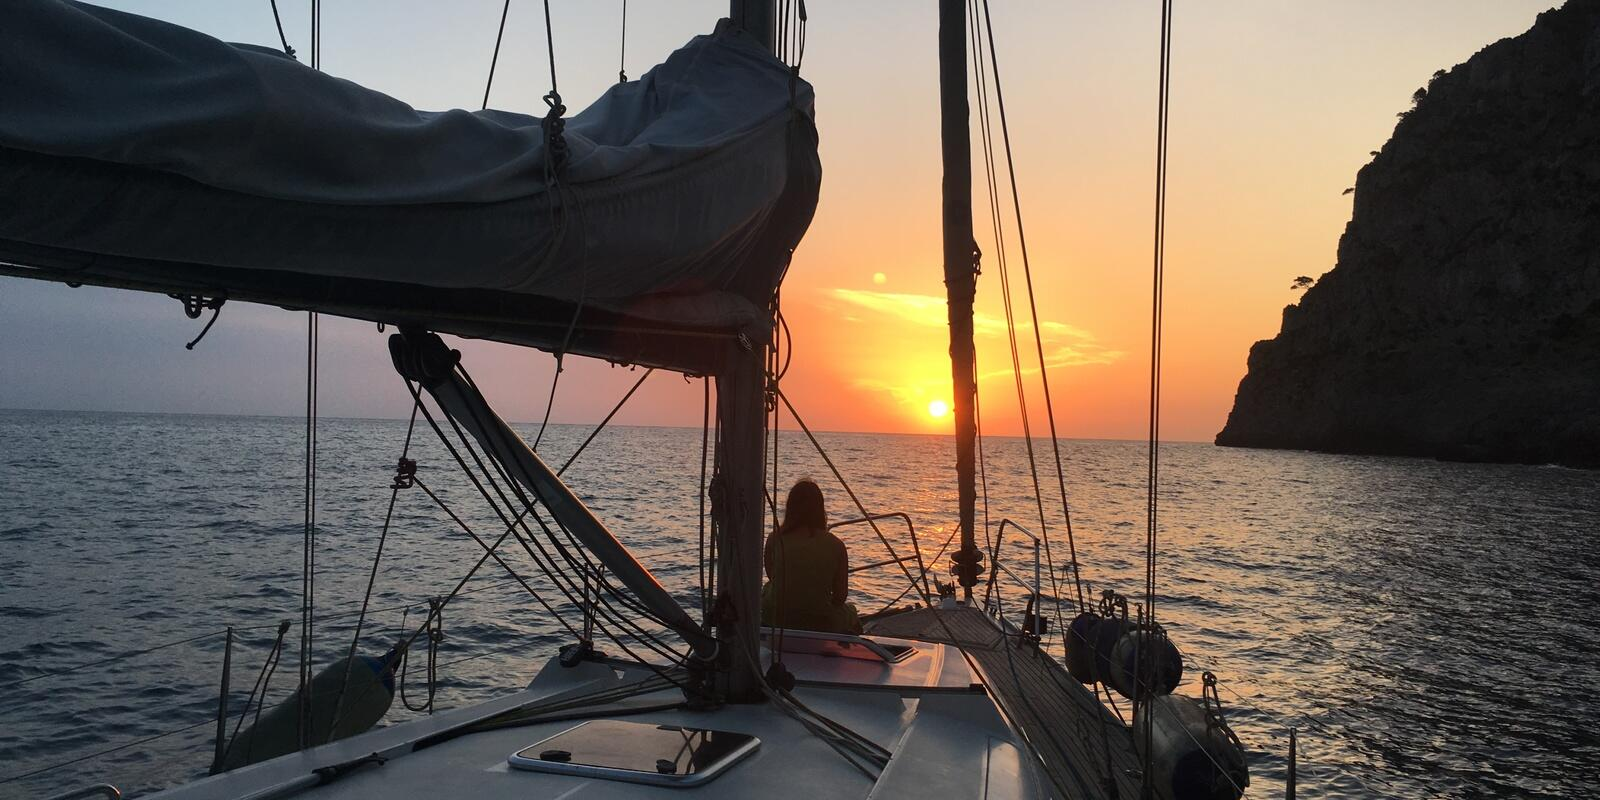 Learn to sail with a fantastic holiday in the Balearics